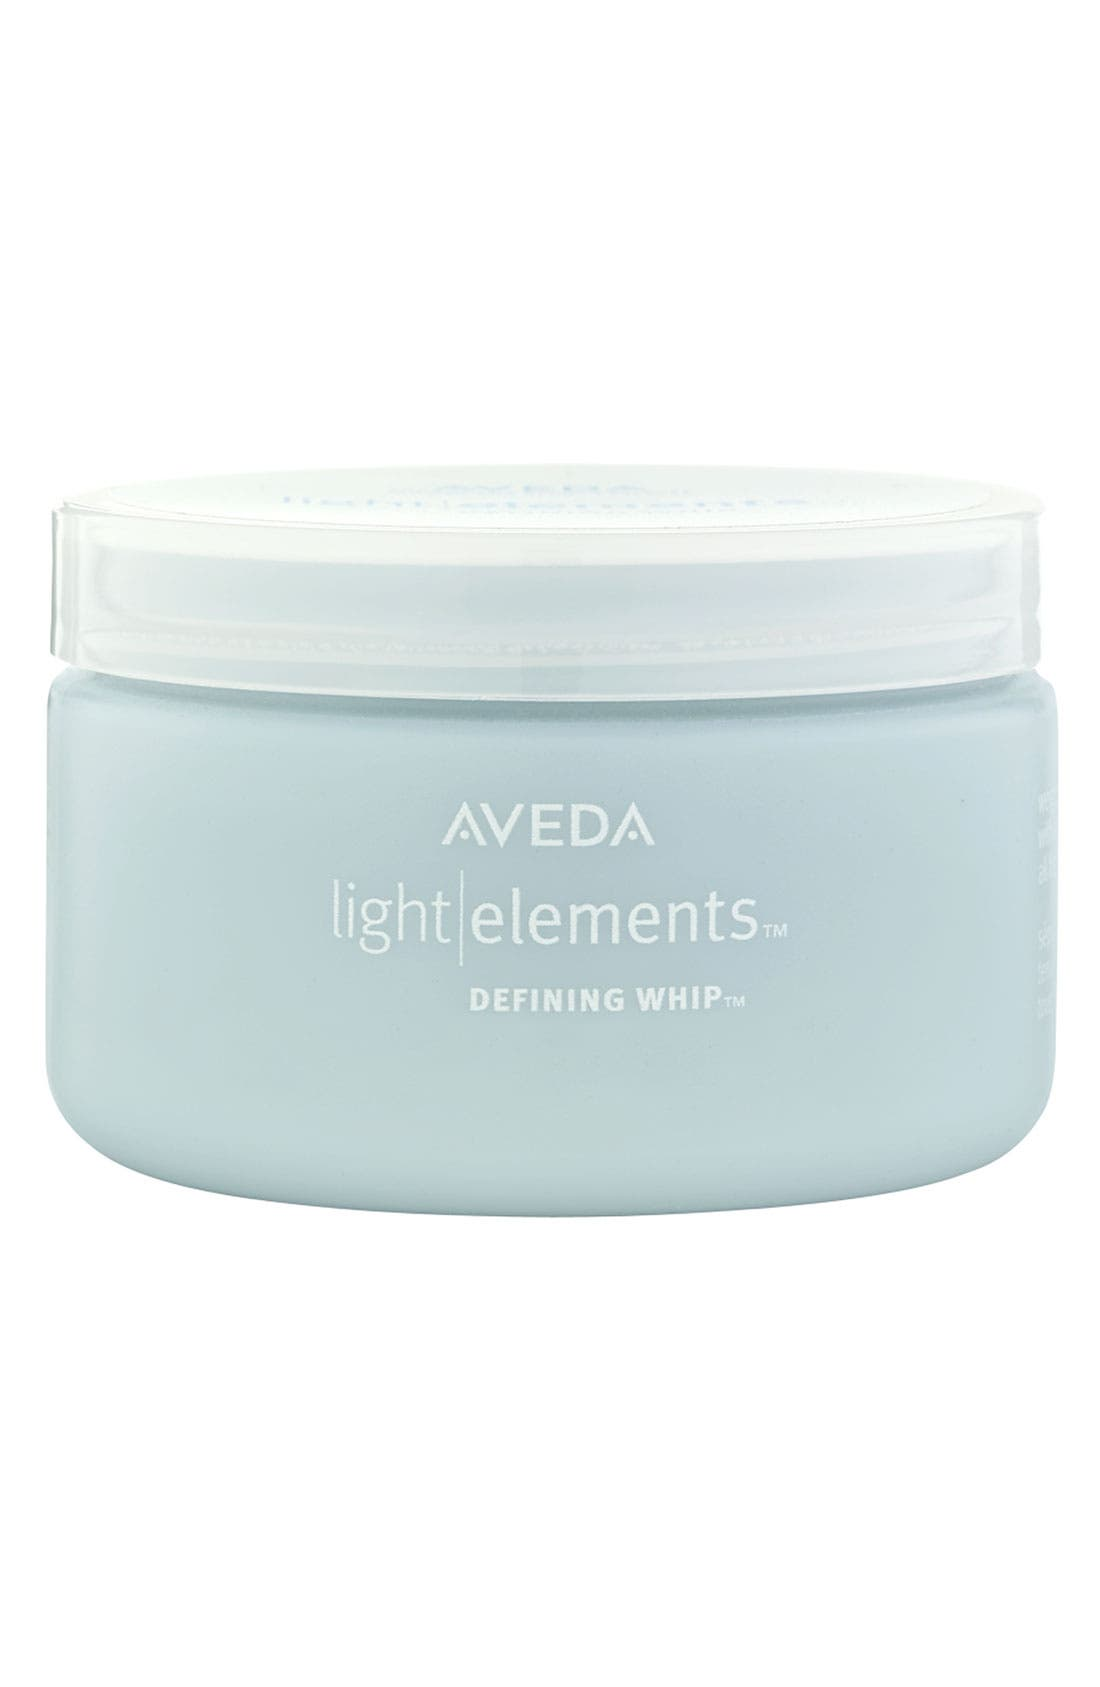 Aveda light elements™ defining whip™